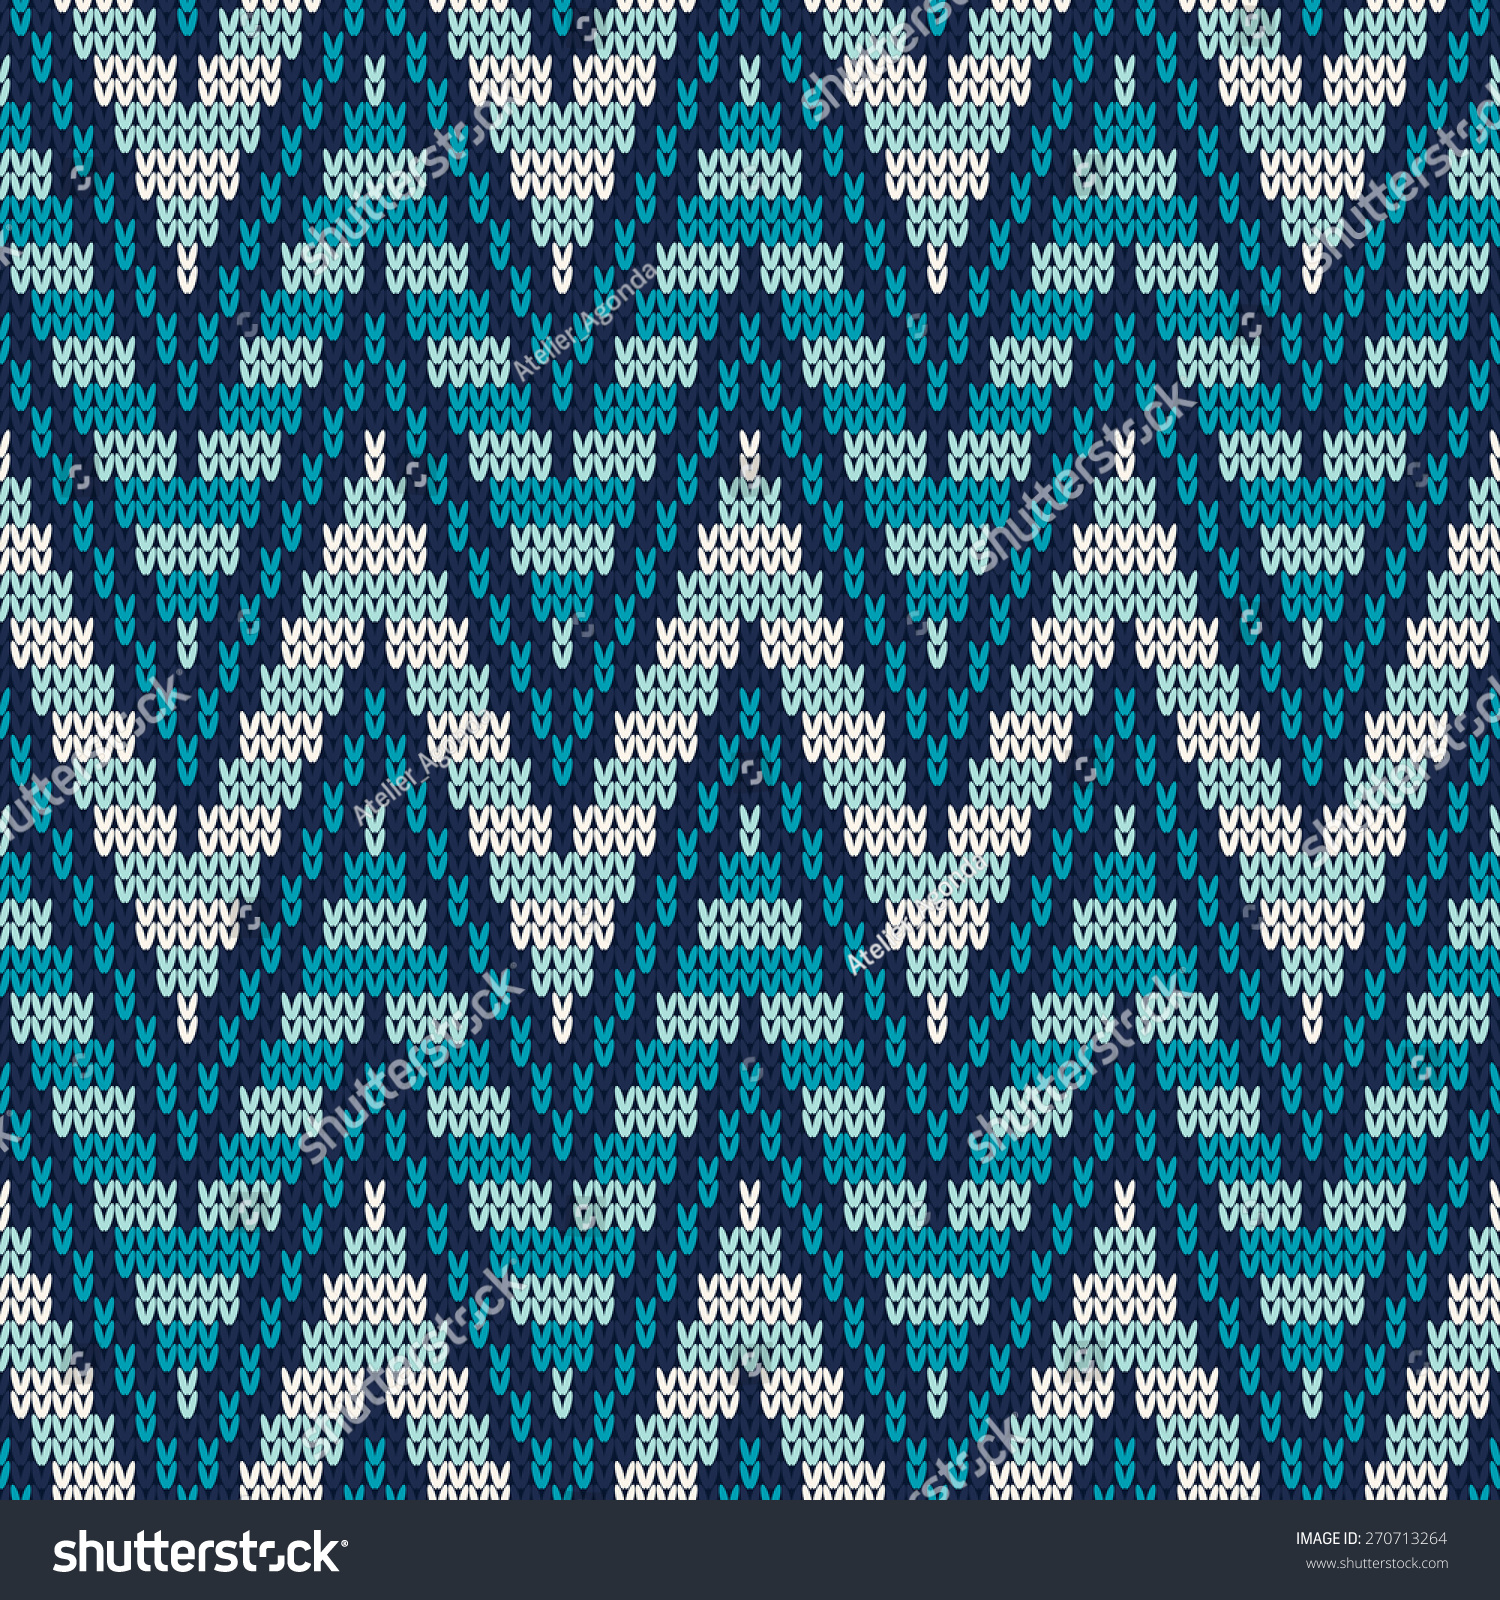 Free Baby Knitting Patterns For Blankets : Traditional Fair Isle Pattern Seamless Knitting Stock Vector 270713264 - Shut...